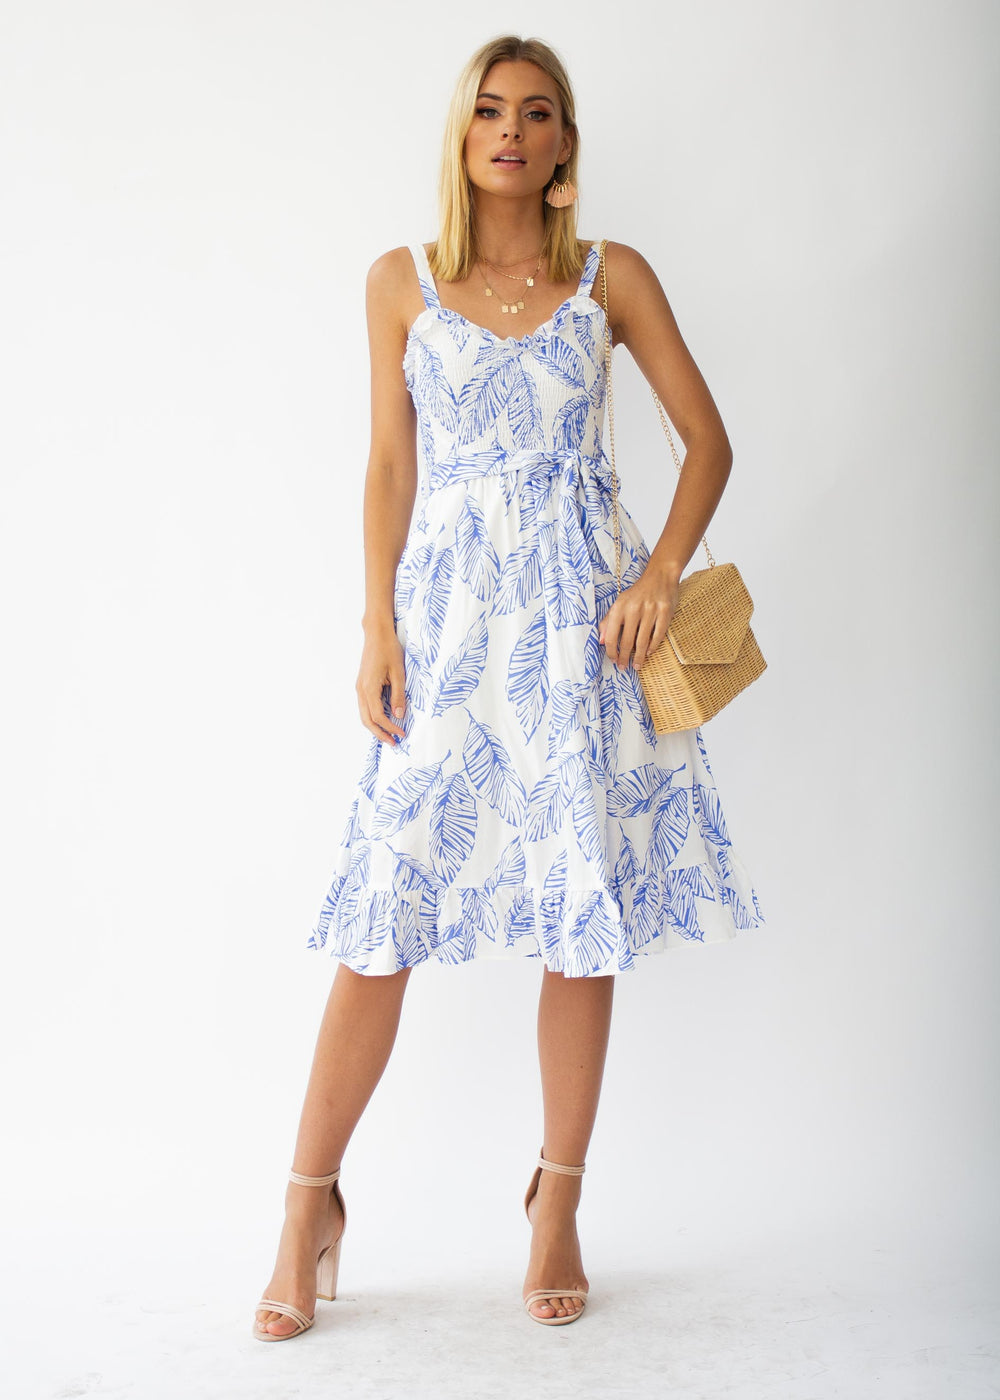 Great Escape Midi Dress w/ Tie - Blue Leaf